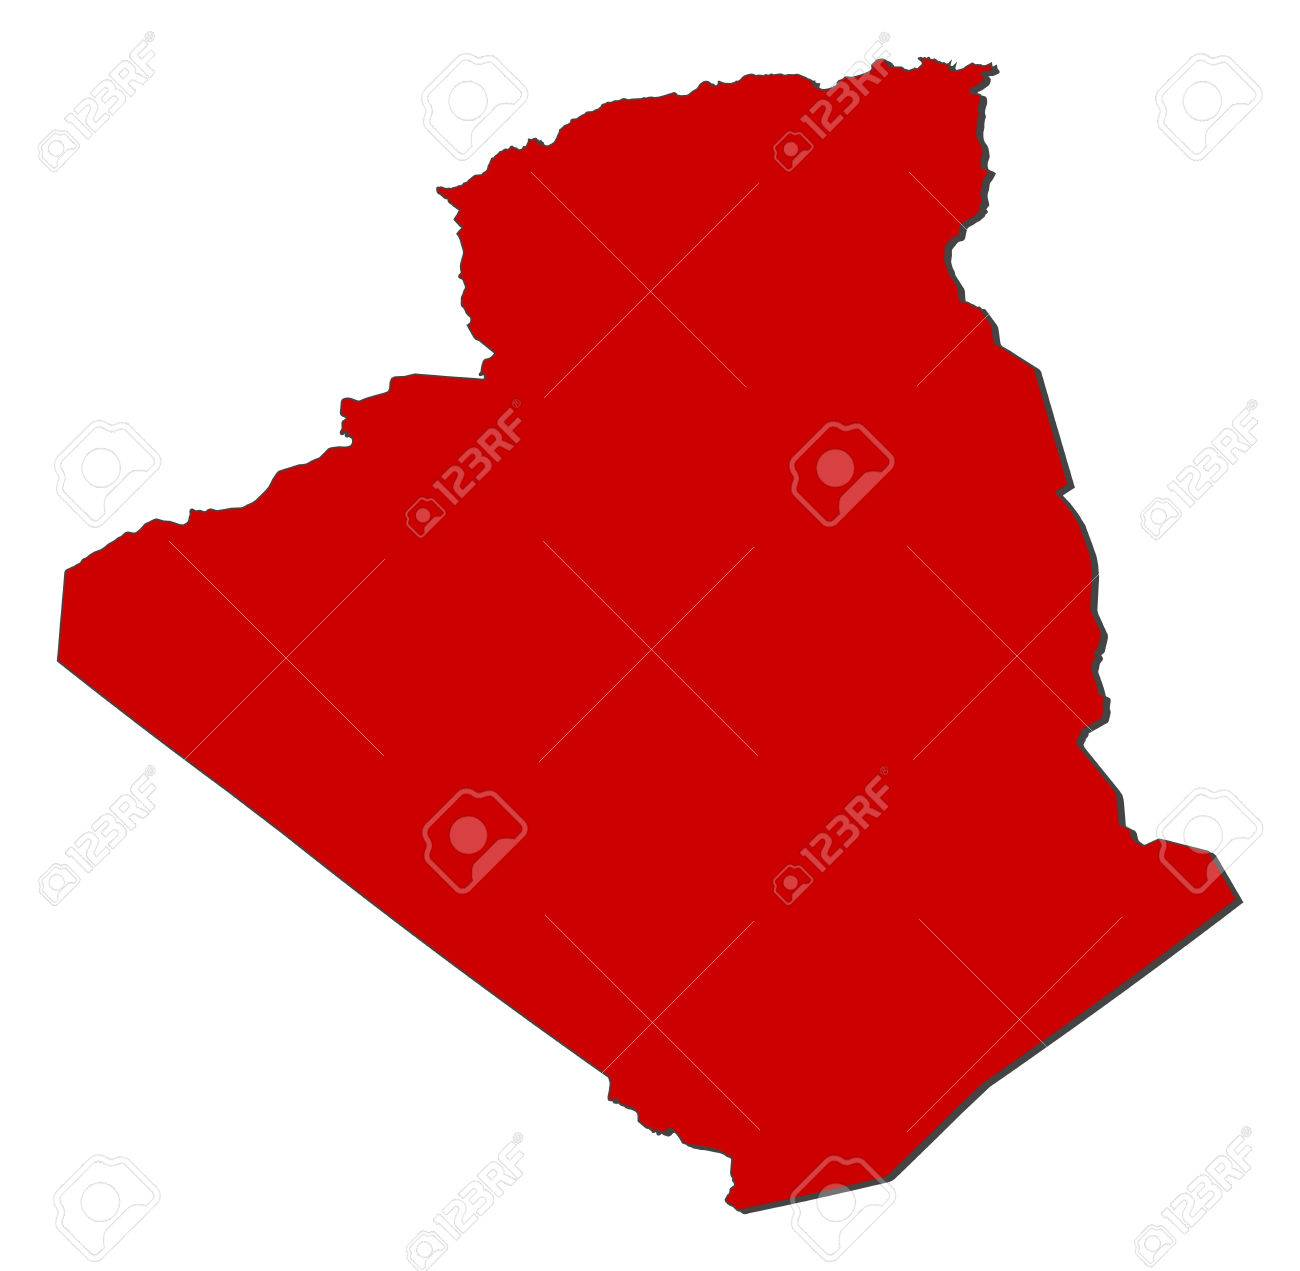 Carte Algeria Vector.Map Of Algeria With The Provinces Colored In Red